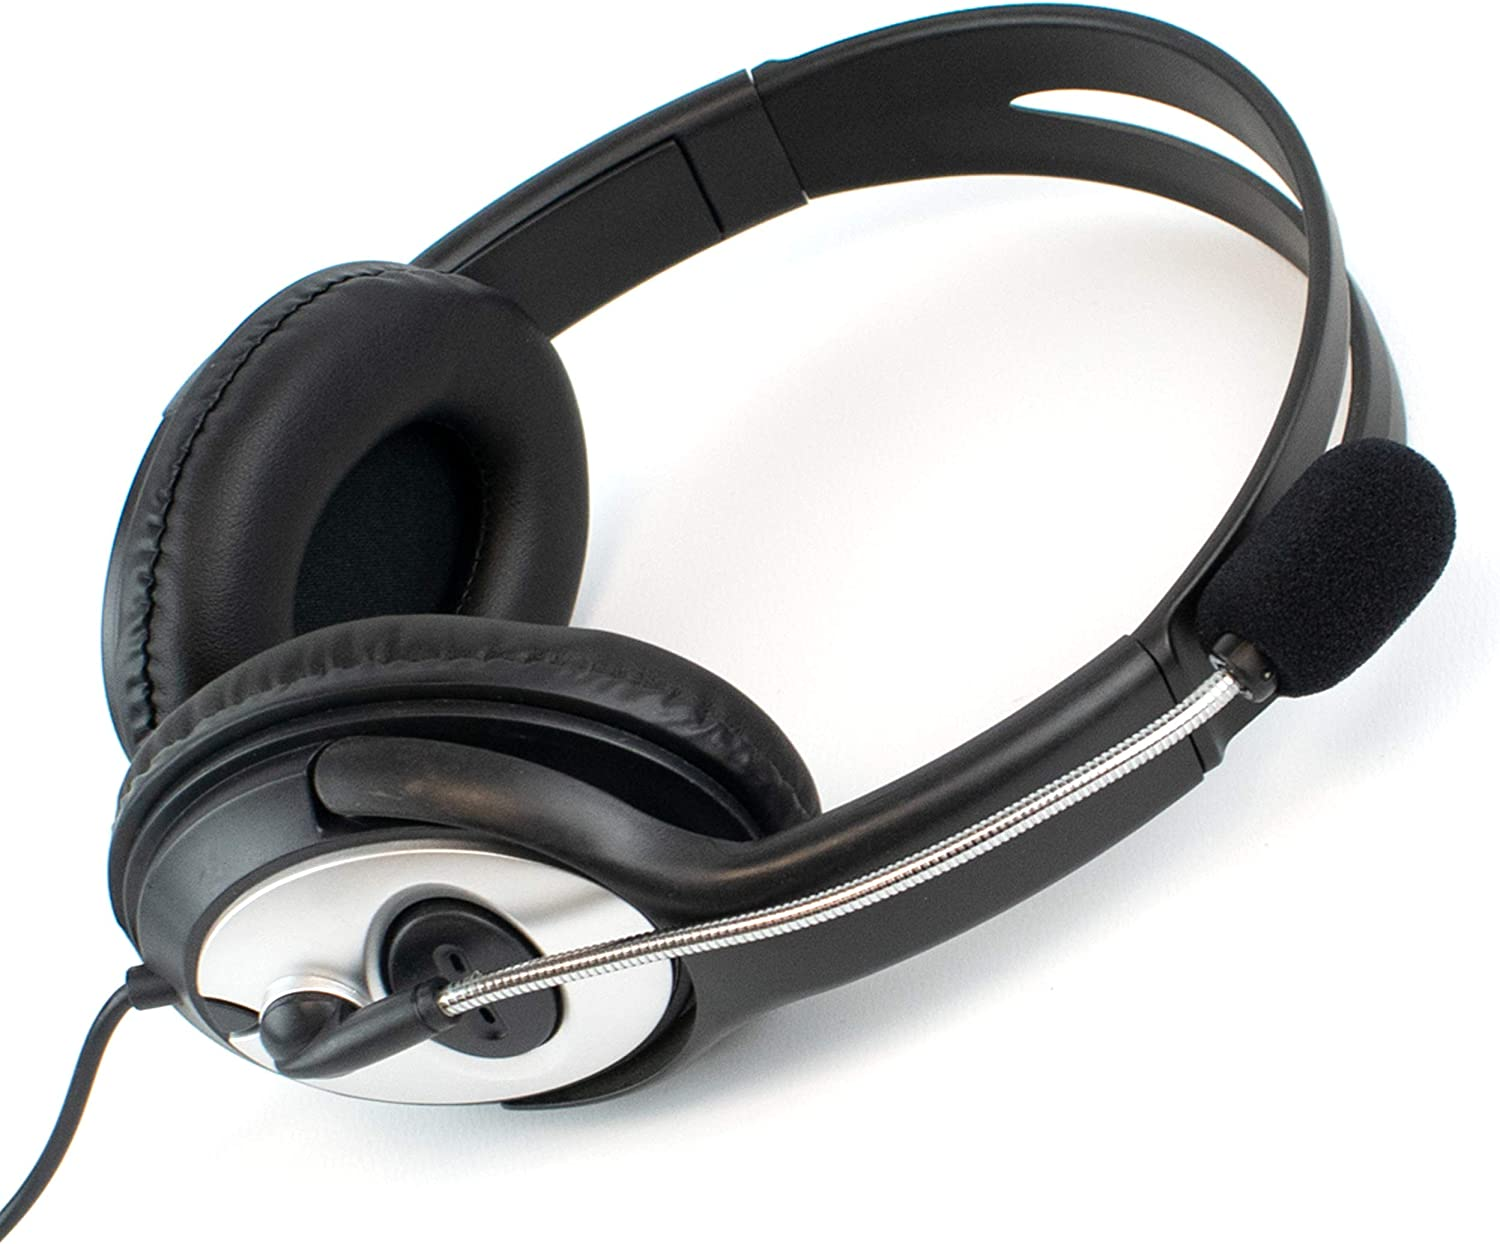 Over-Ear Overhead Stereo Headphones and Mic I-CHOOSE LIMITED USB Computer Laptop Headset with Microphone Skype or Zoom PC Live Chat Volume Control